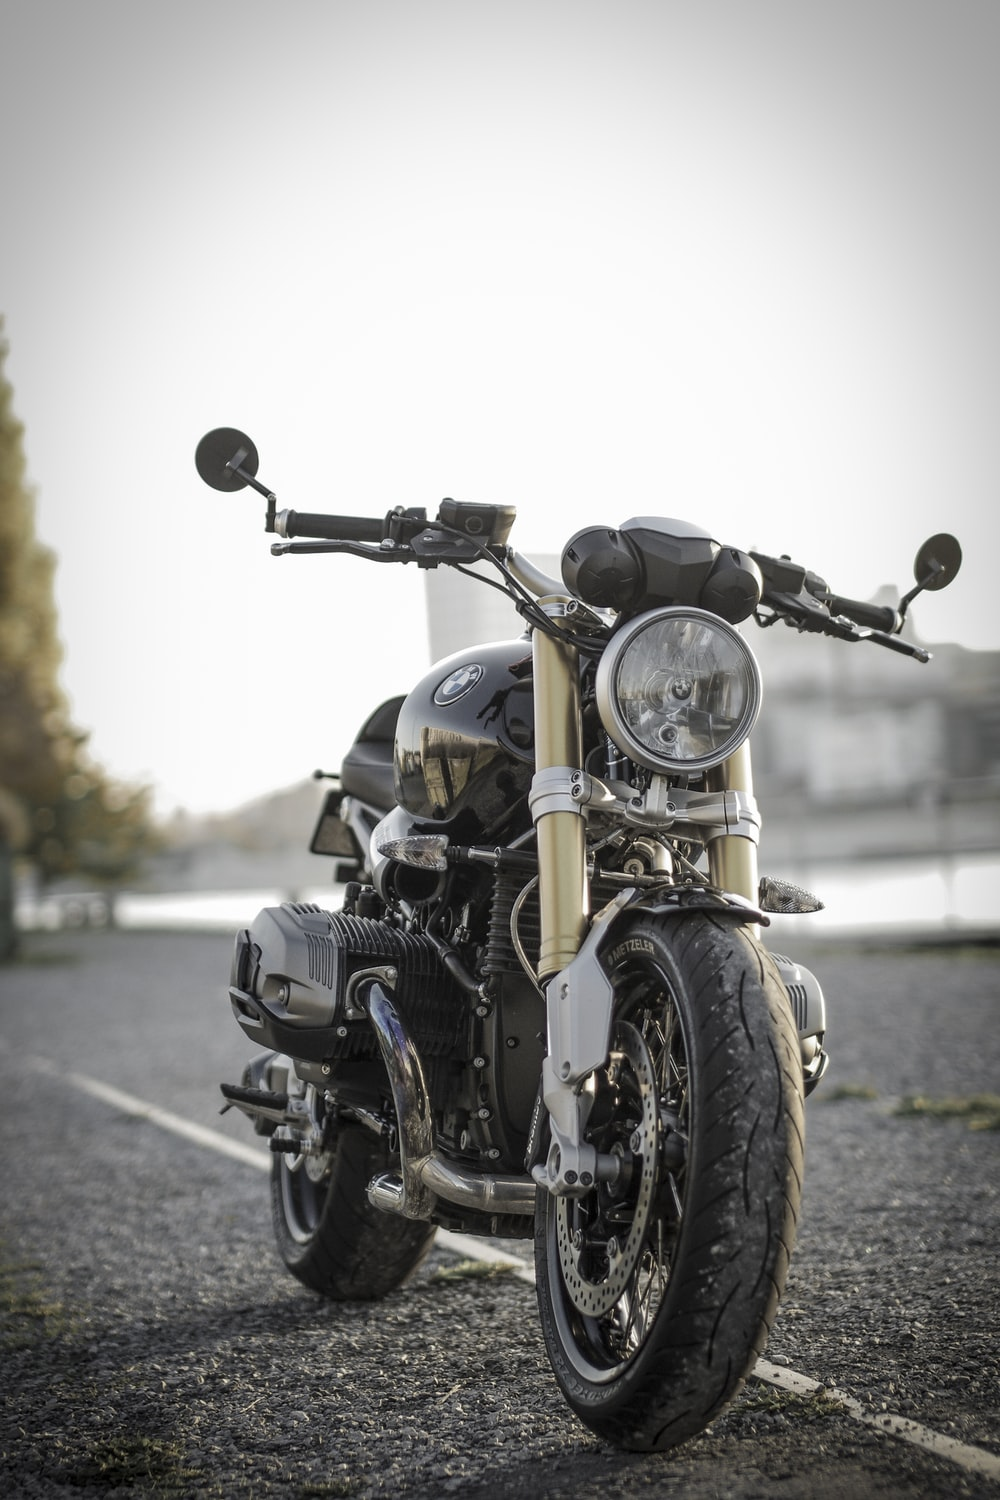 black bobber bike parked on road during daytime